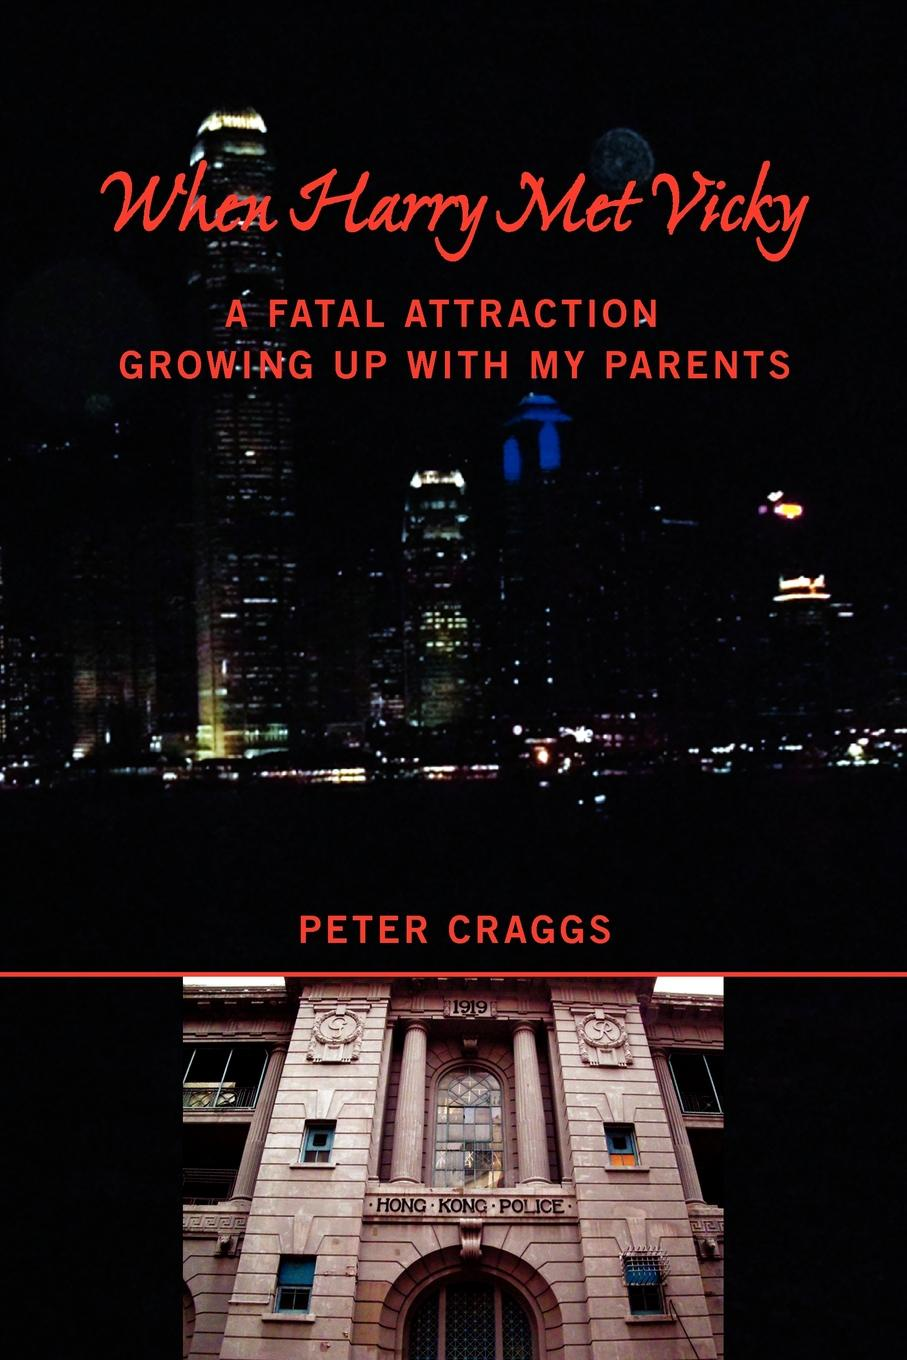 Peter Craggs When Harry Met Vicky-A Fatal Attraction vicky